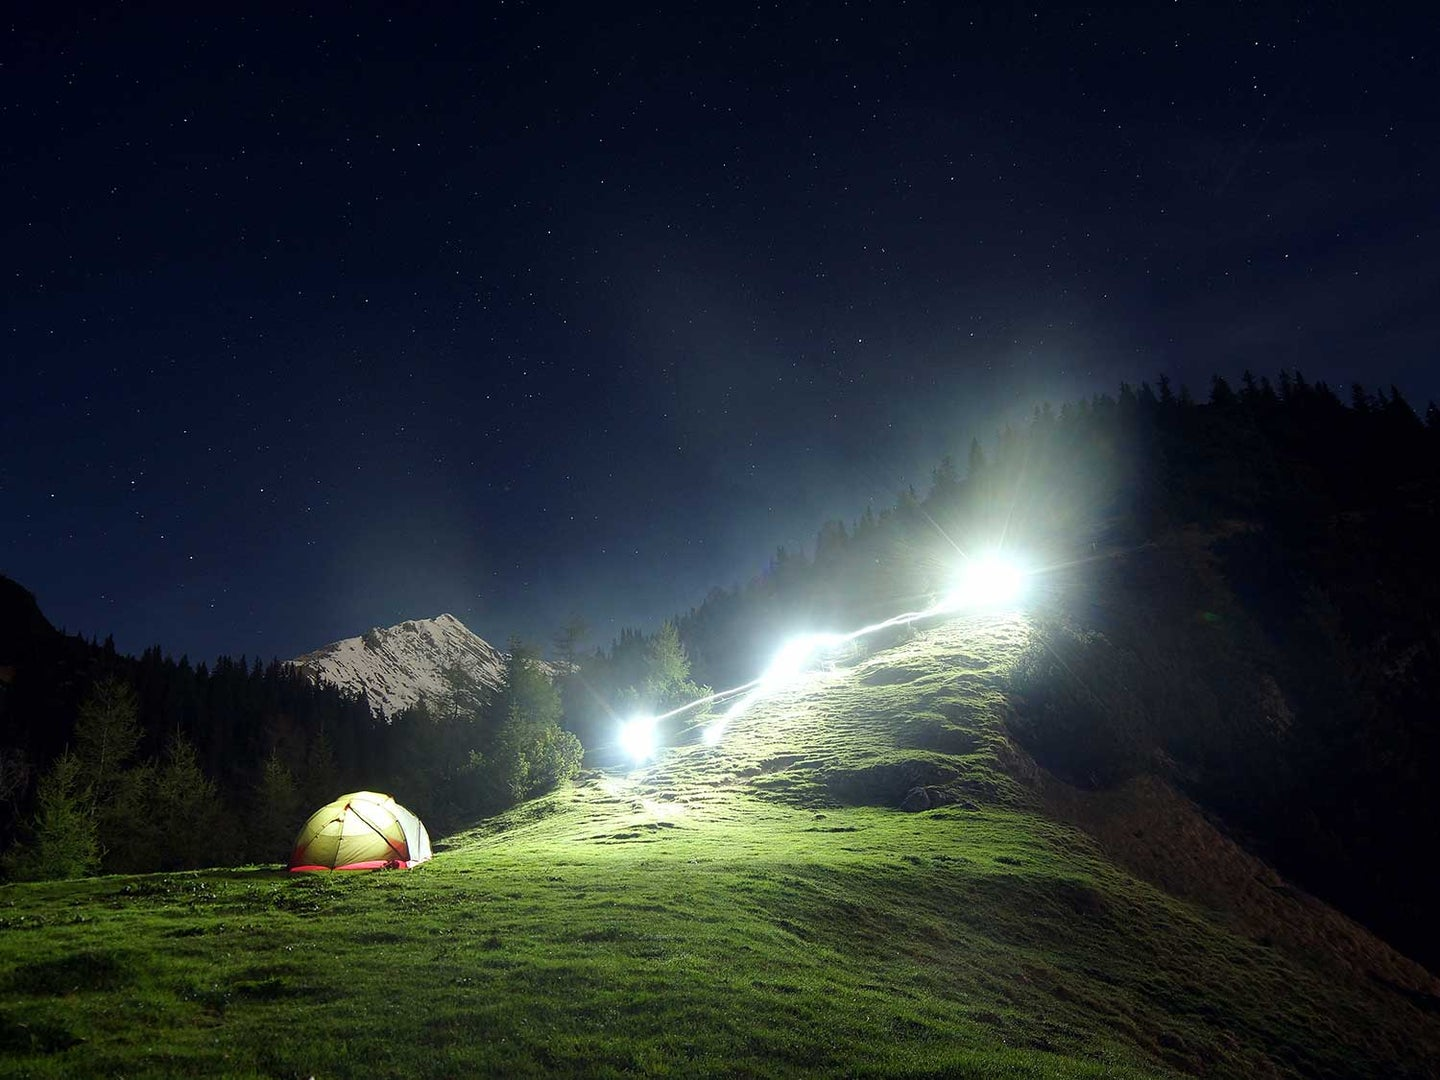 Camping on mountain with lights.